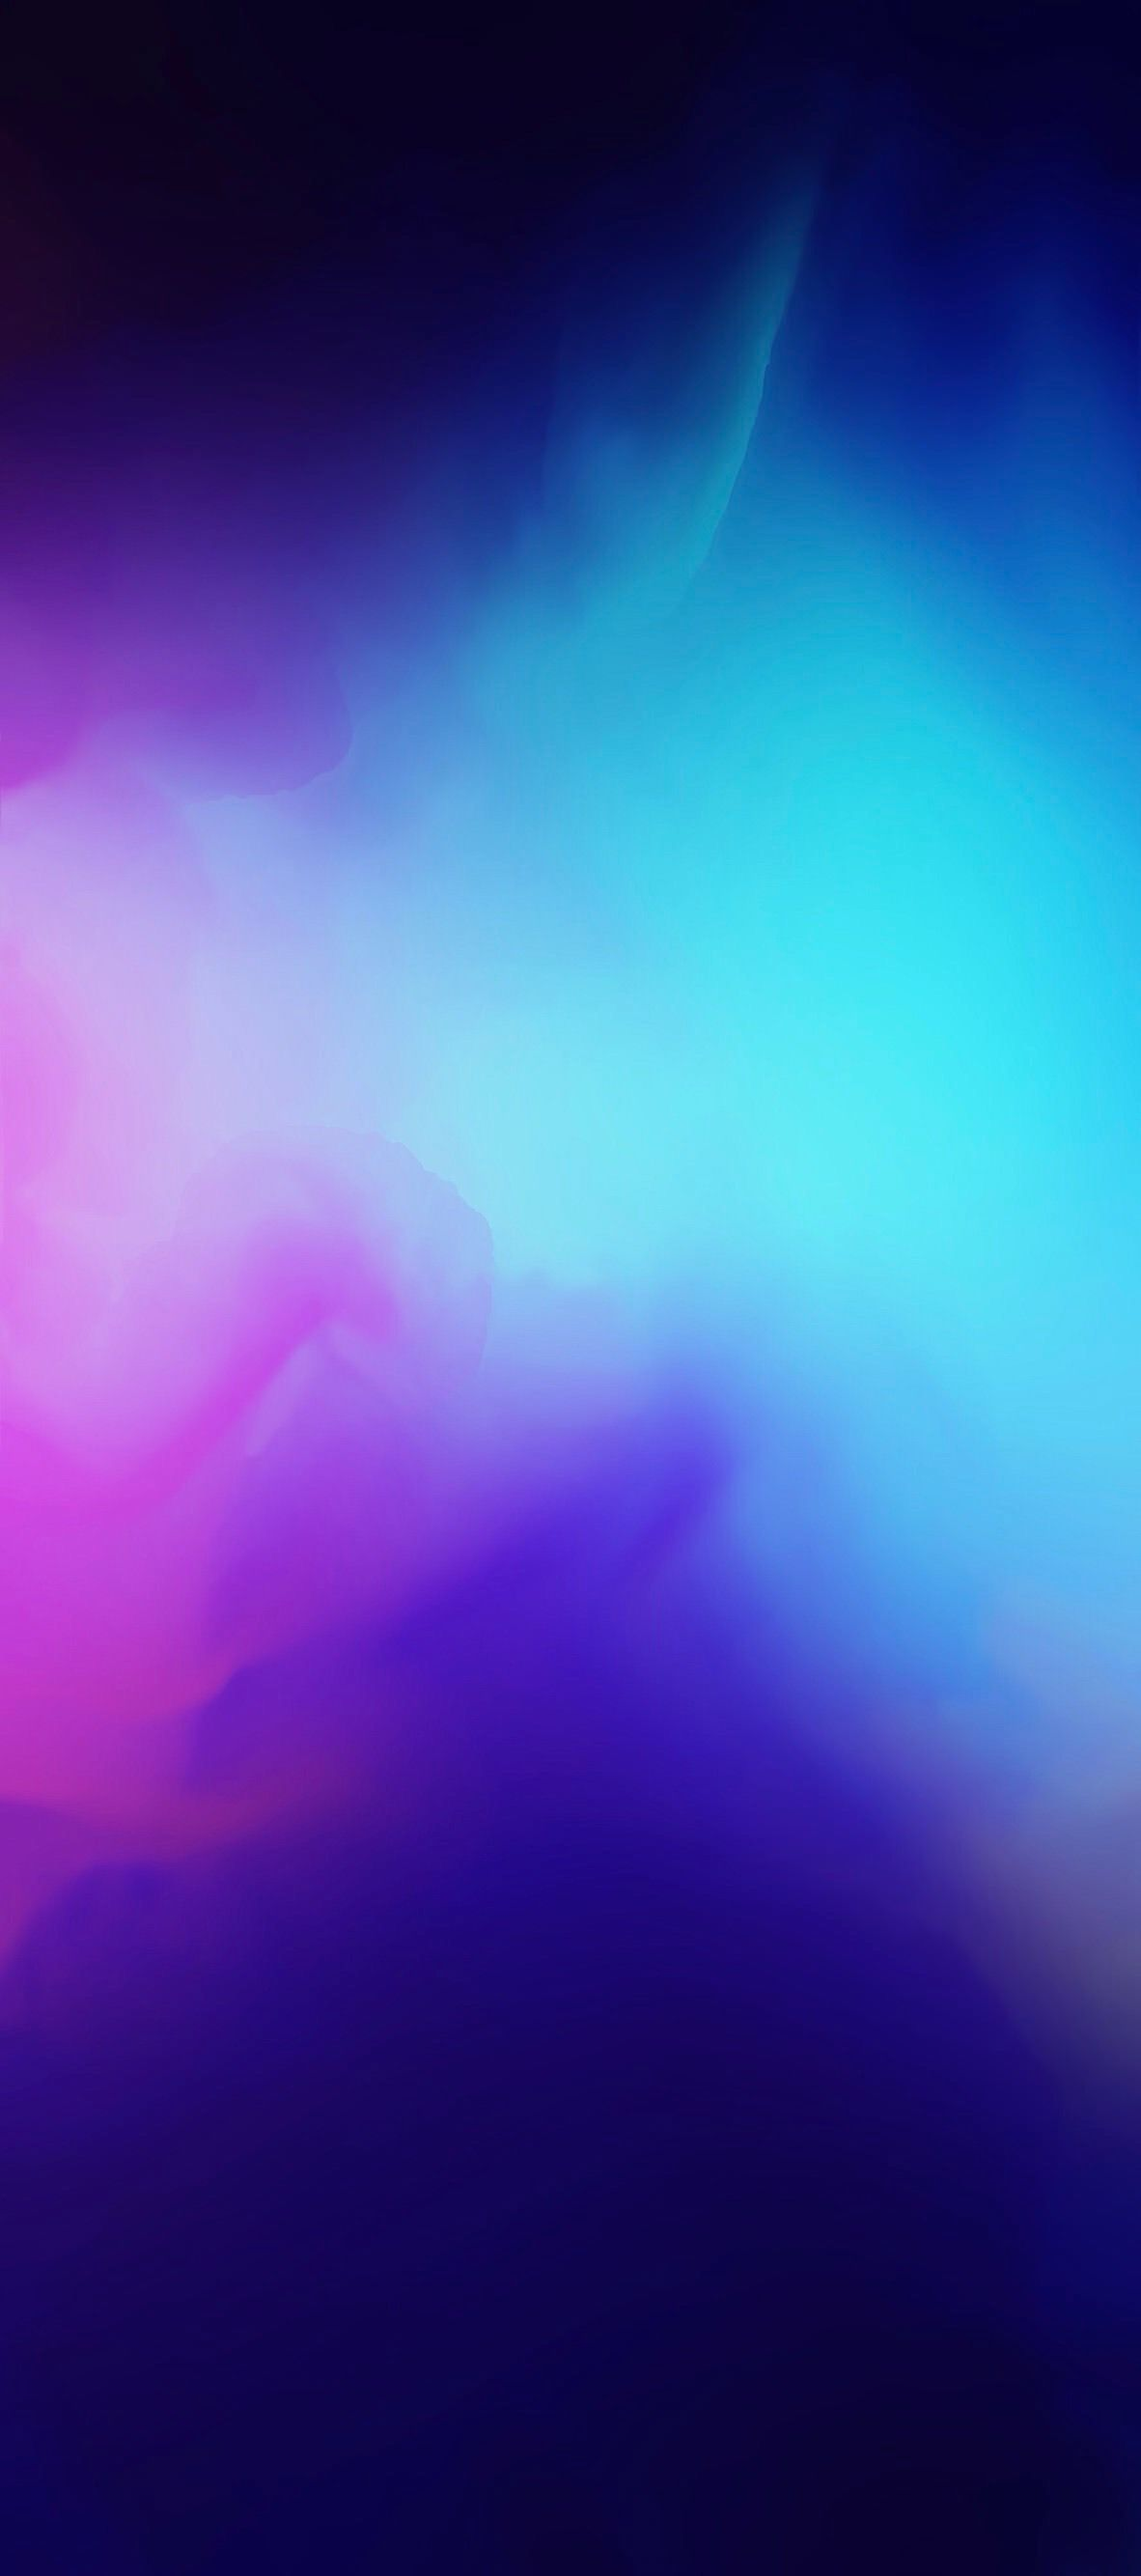 IOS 11, IPhone X, Blue, Purple, Abstract, Apple, Wallpaper